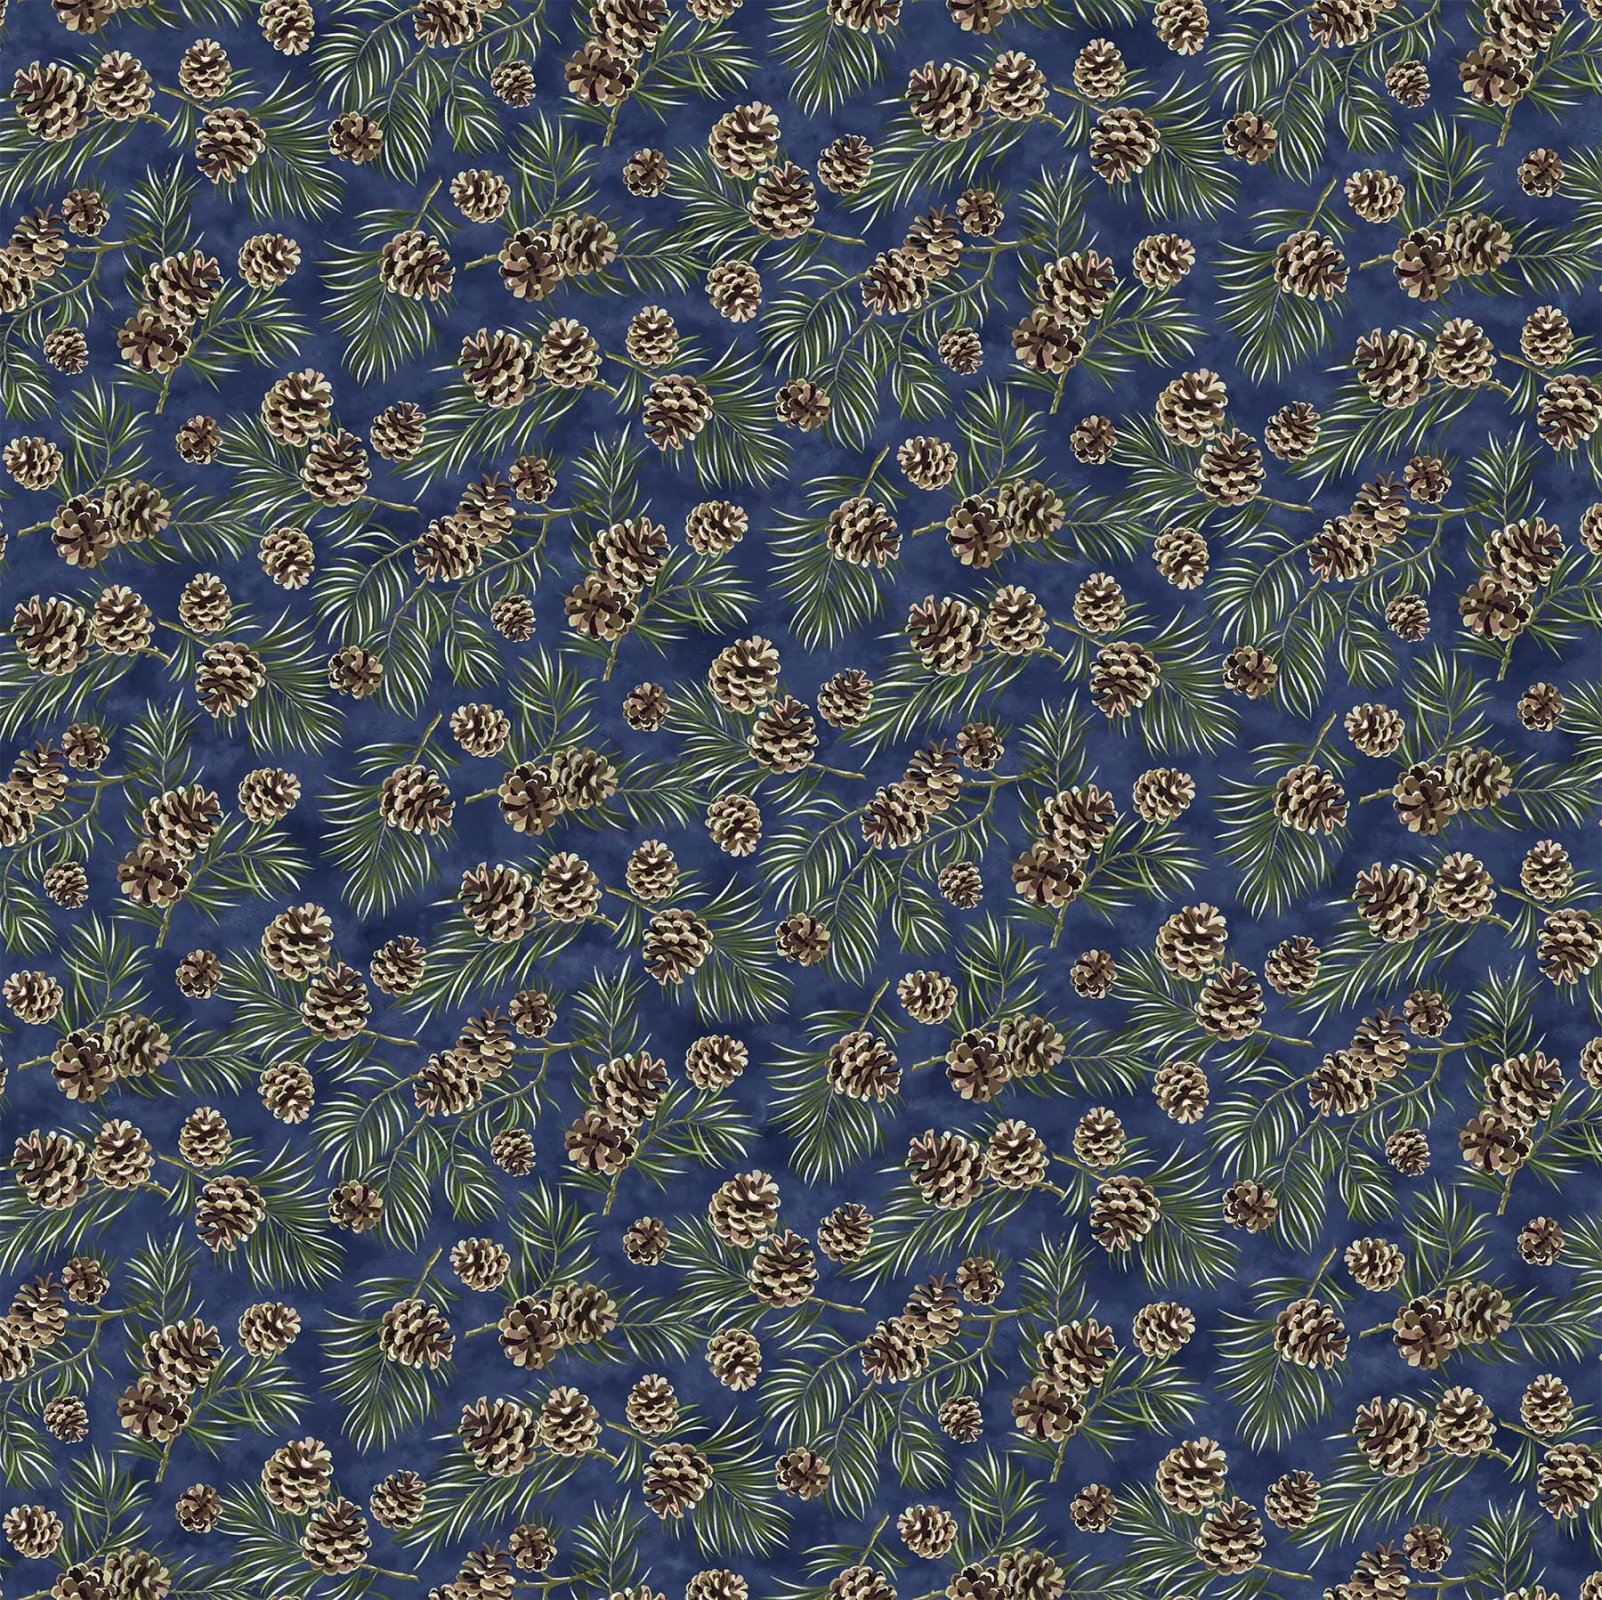 Northcott Christmas Wish 23465-44 Navy Pine Cone